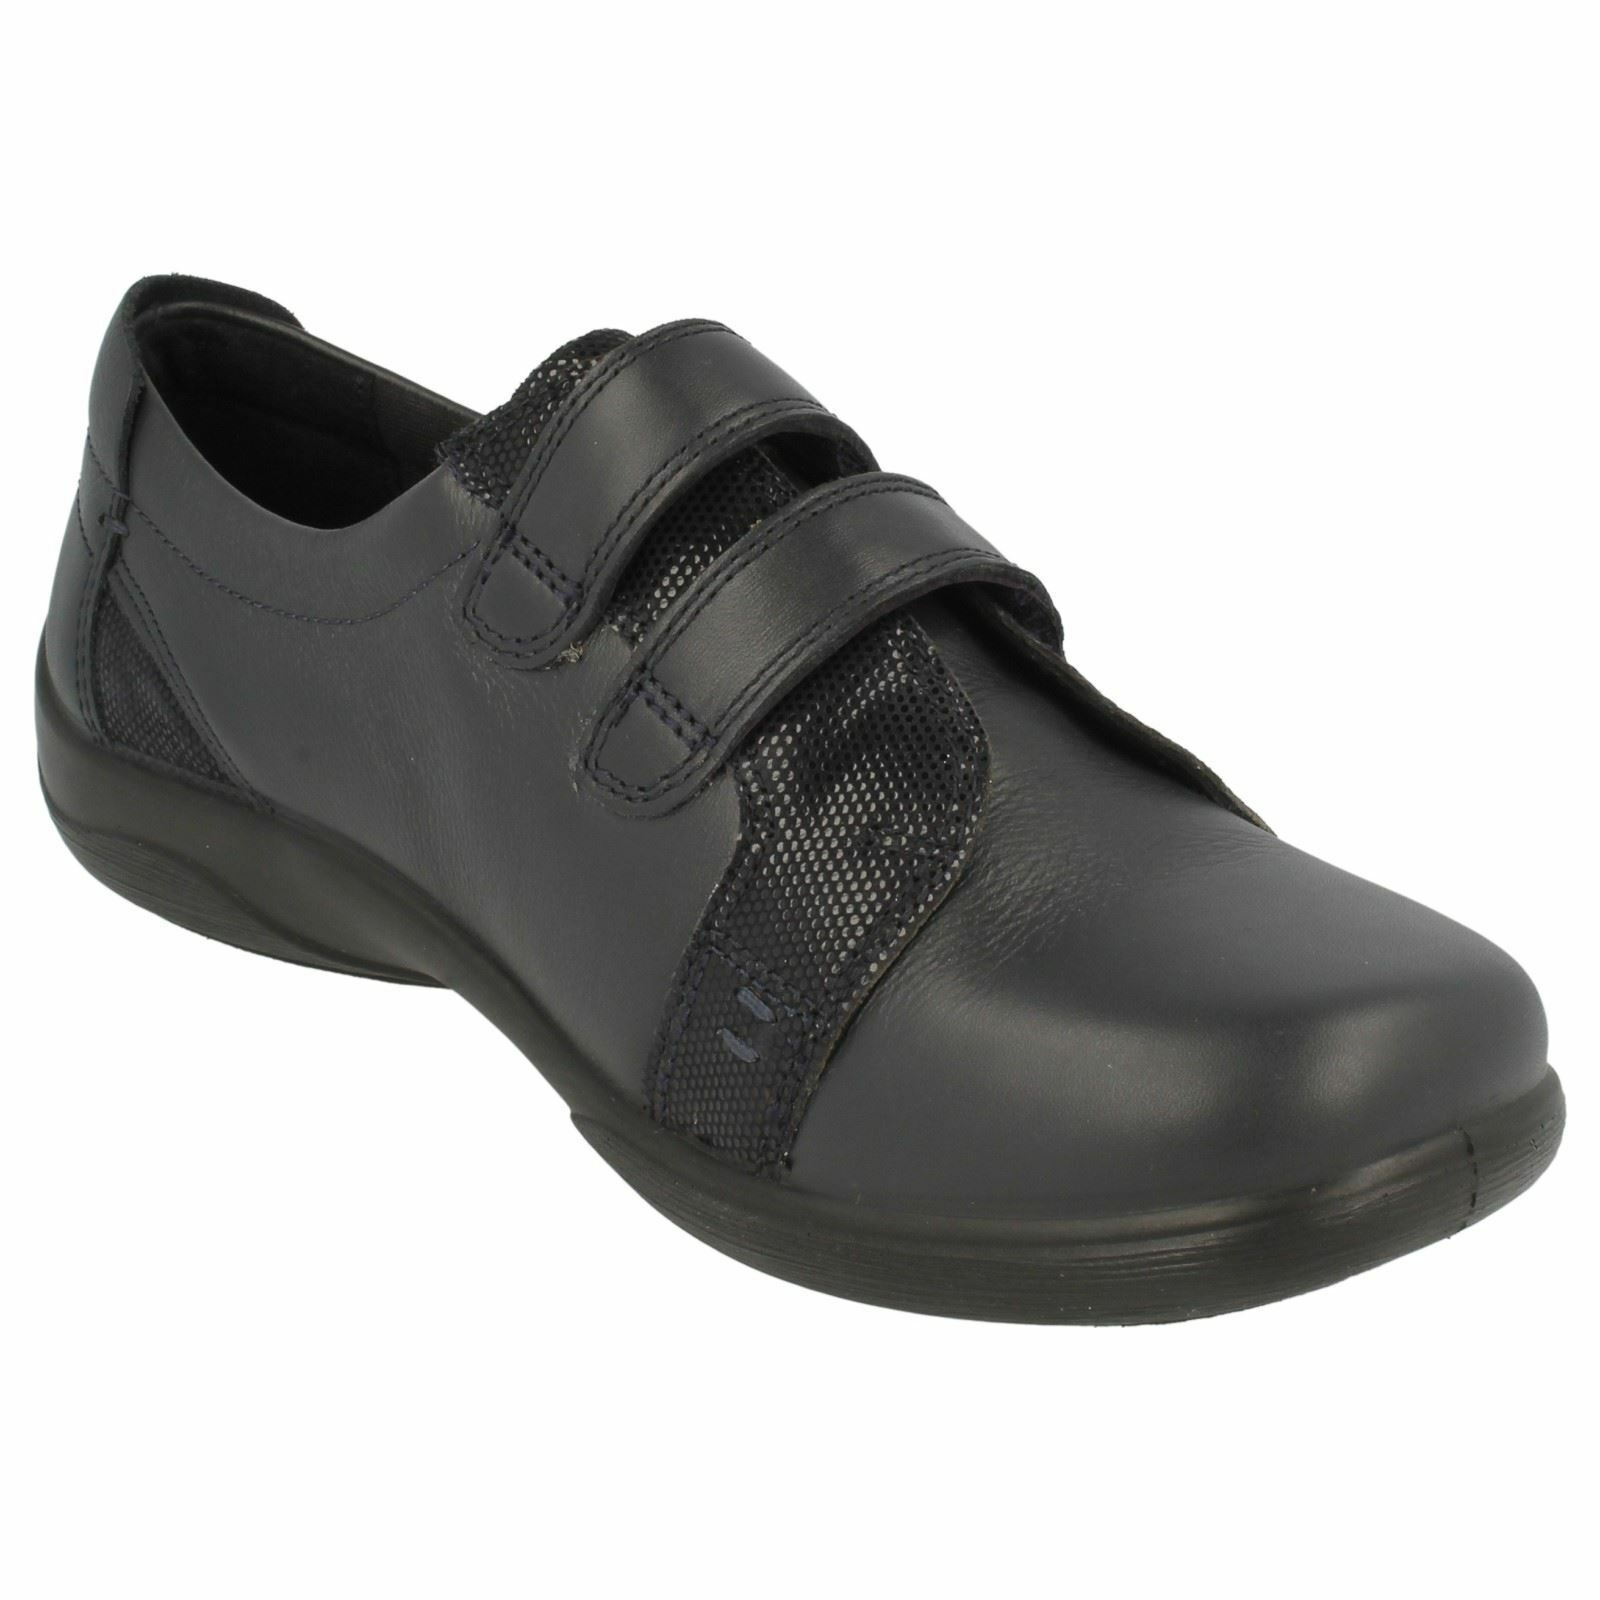 mujer ADHESIVO Padders Leather CIERRE ADHESIVO mujer CIERRE Zapato Dual Fit Verso d9547c